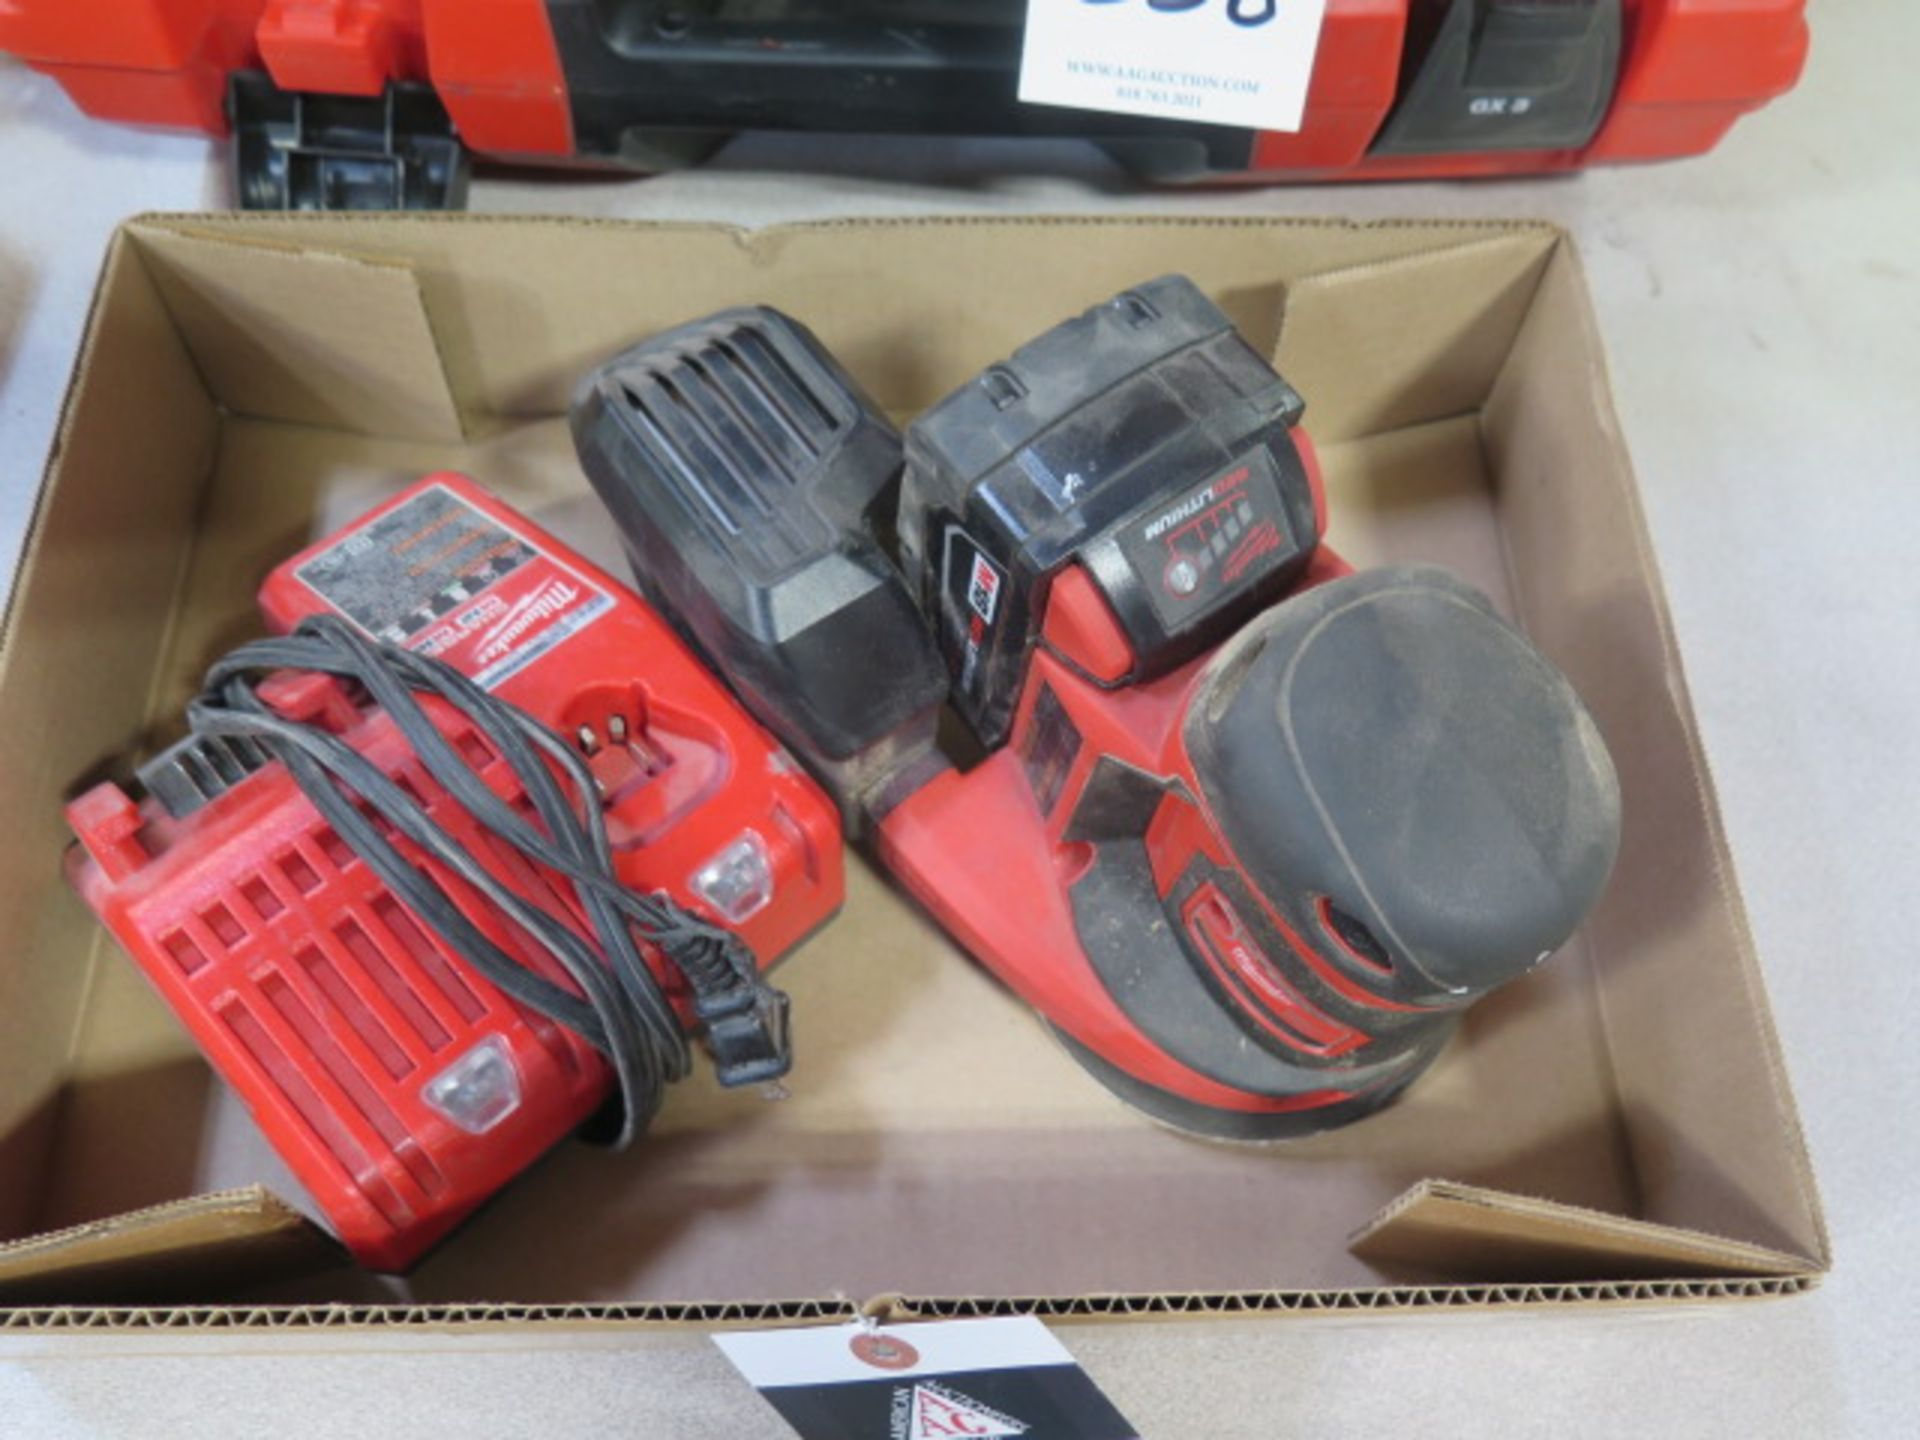 Milwaukee 18 Volt Orbital Sander w/ Charger (SOLD AS-IS - NO WARRANTY) - Image 2 of 6